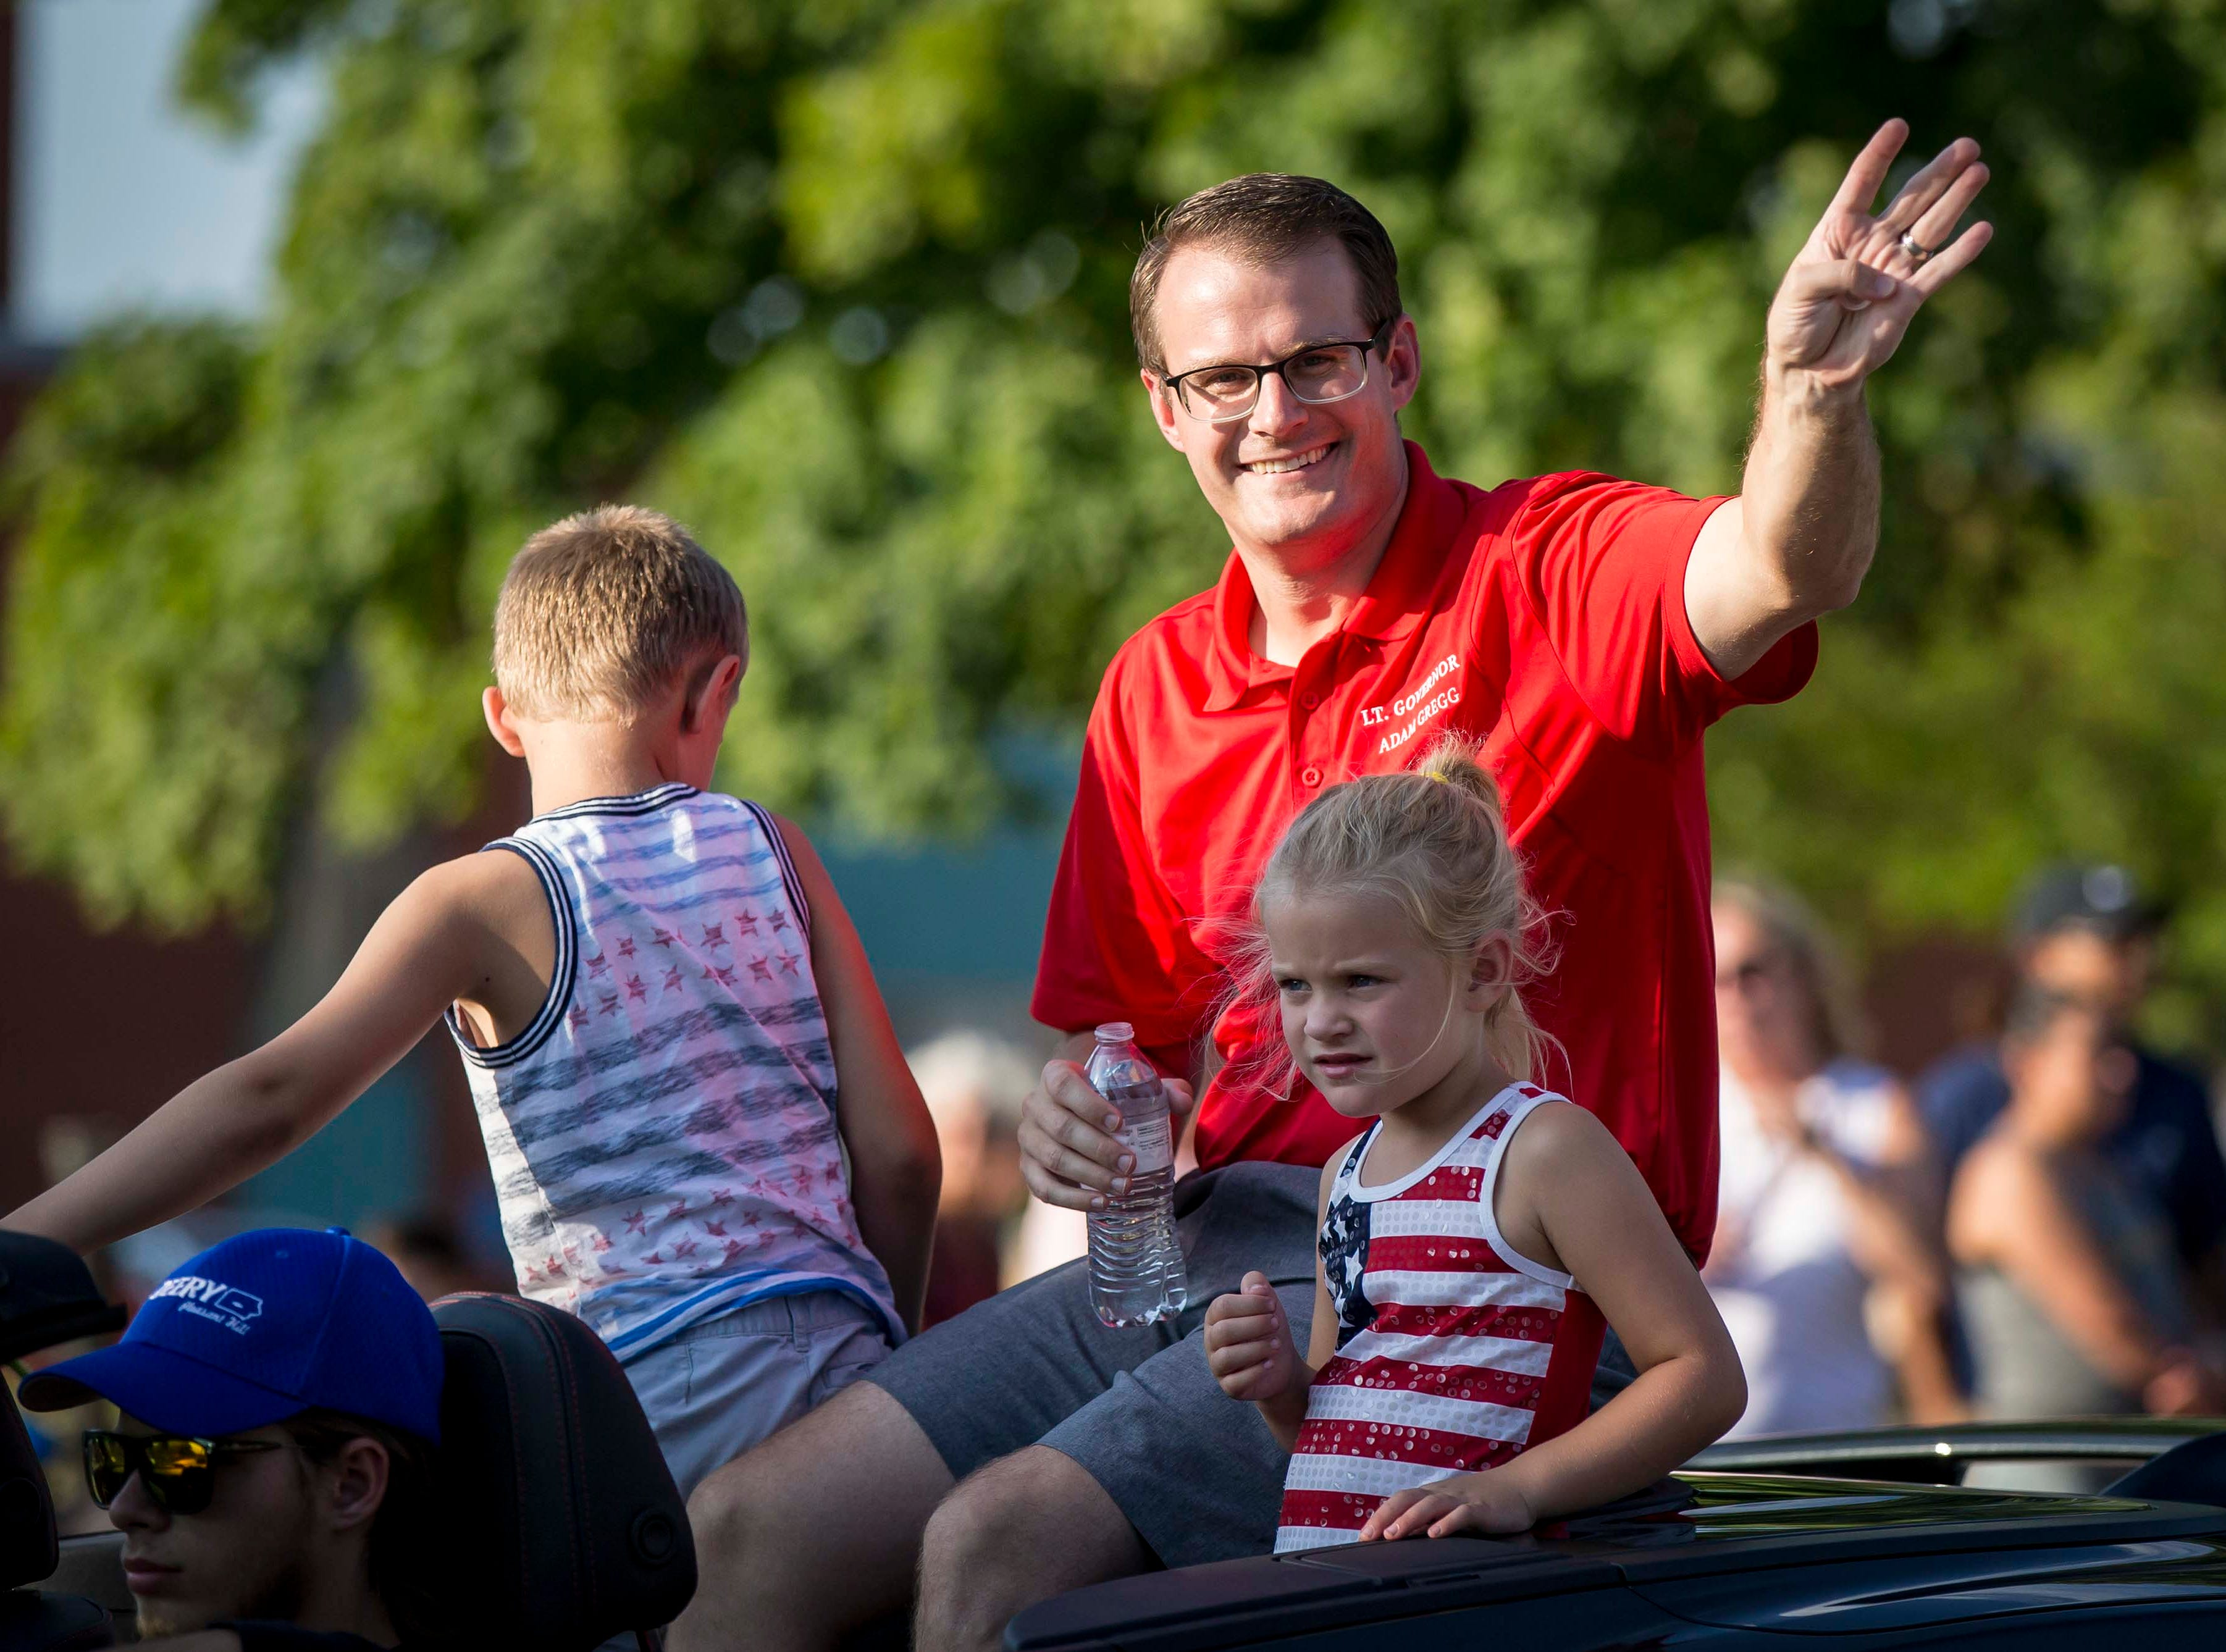 Acting Lt. Gov. of Iowa Adam Gregg and family ride in the 2018 Iowa State Fair parade from the Statehouse to downtown Des Moines Wednesday, Aug. 8, 2018. The Iowa State Fair runs from Aug. 9Ð19.